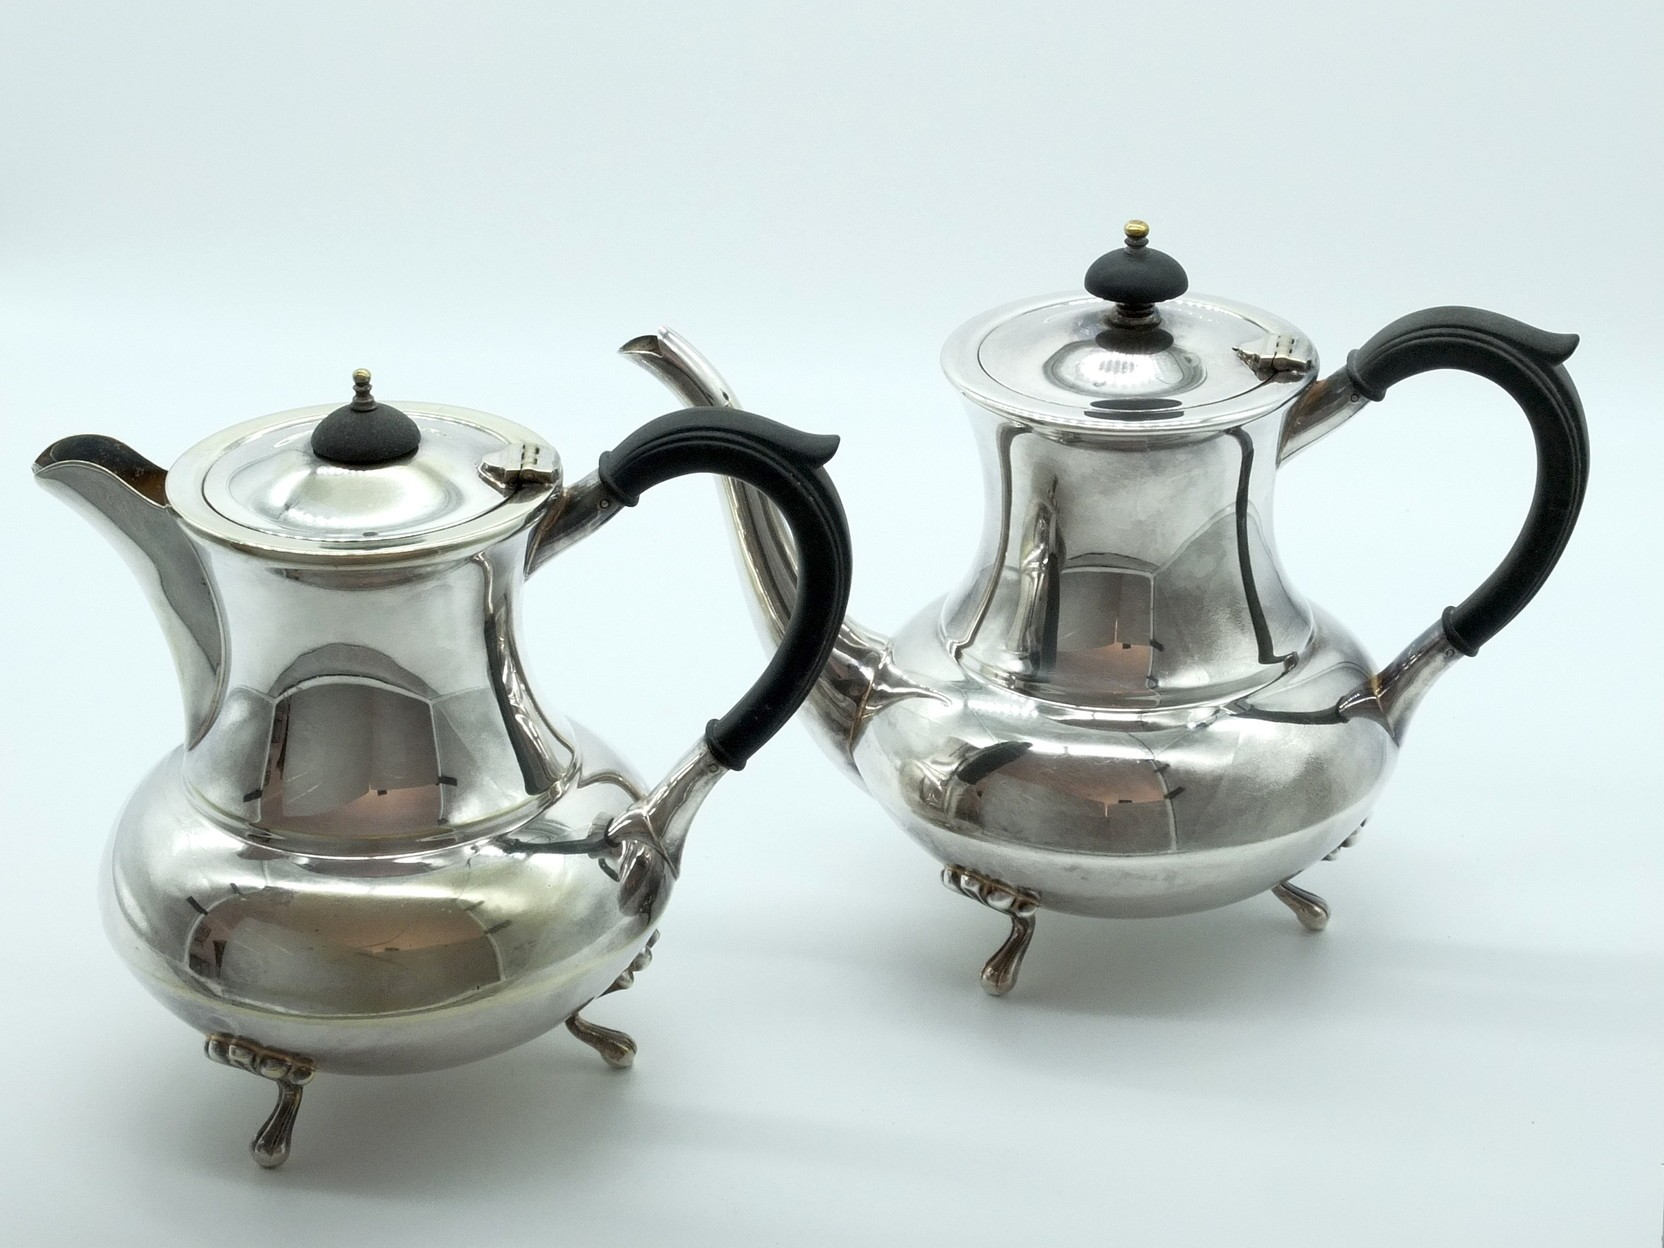 'Two Paramount Silver Plate Coffee Pots'